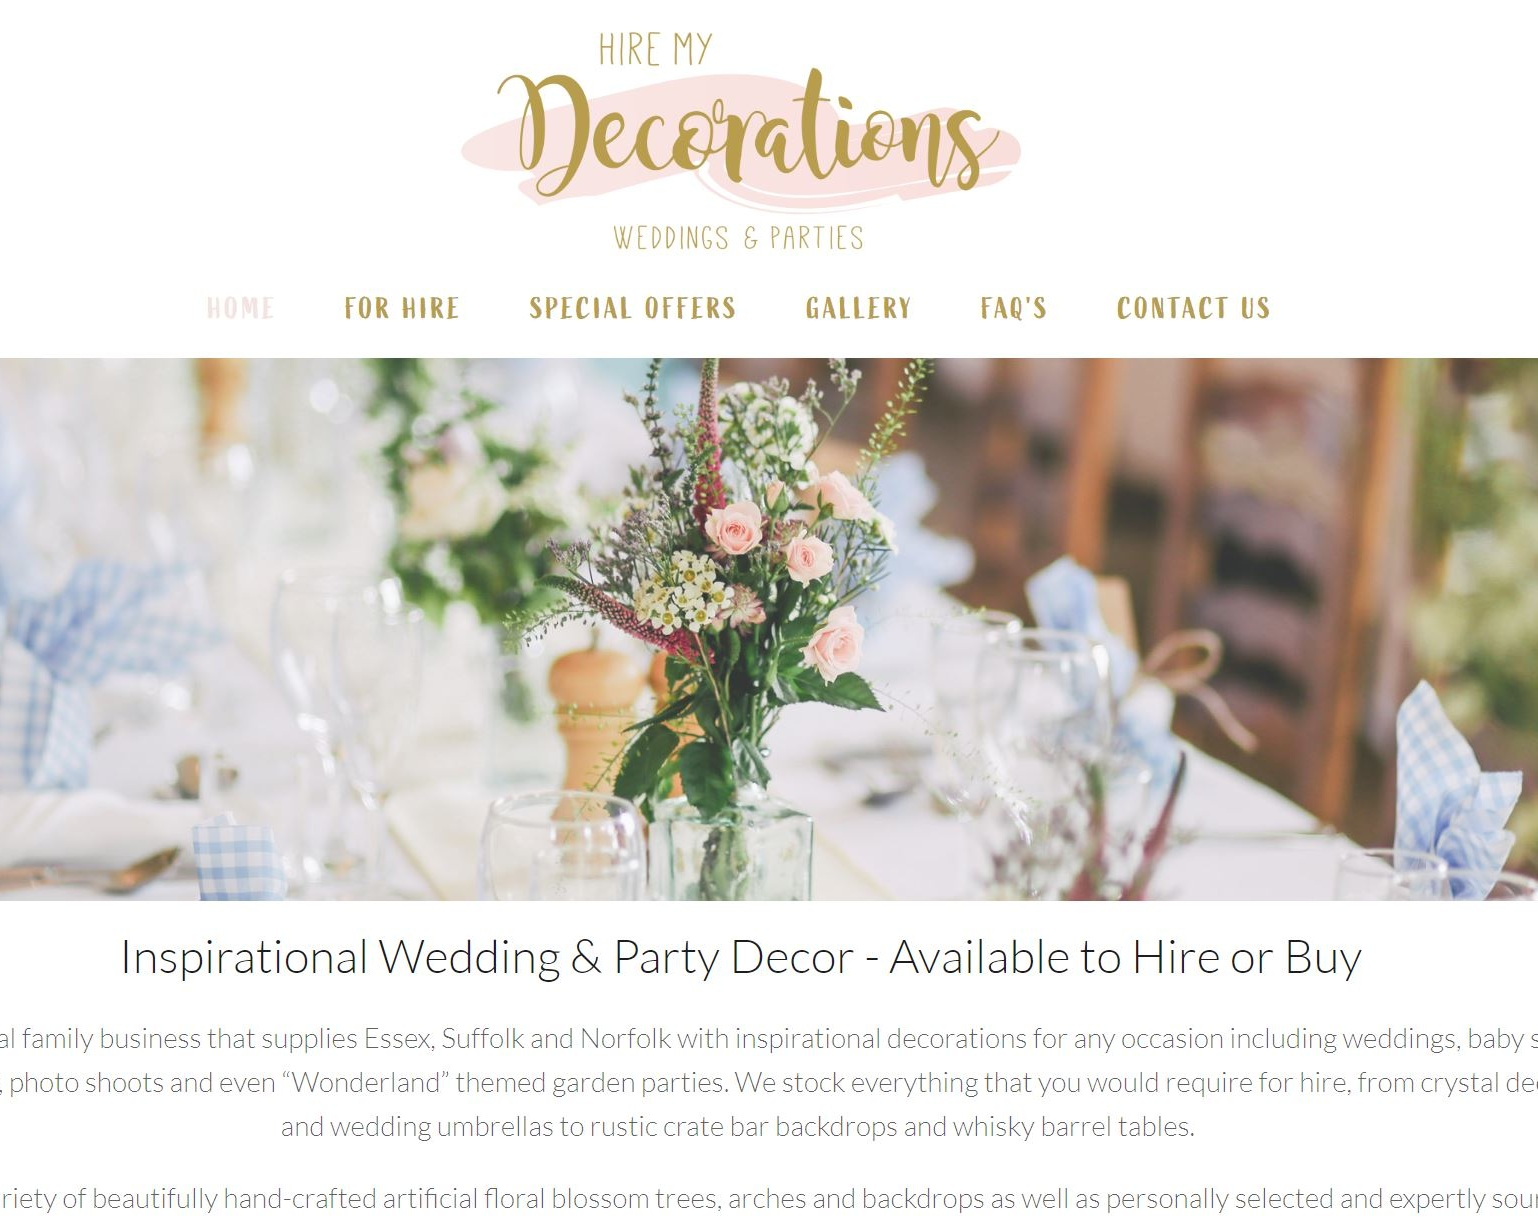 Hire My Decor - Wedding and party supplies for hire covering Essex, Suffolk and Hertfordshire. Including venue dressing, chair covers, centrepieces and sweet carts.